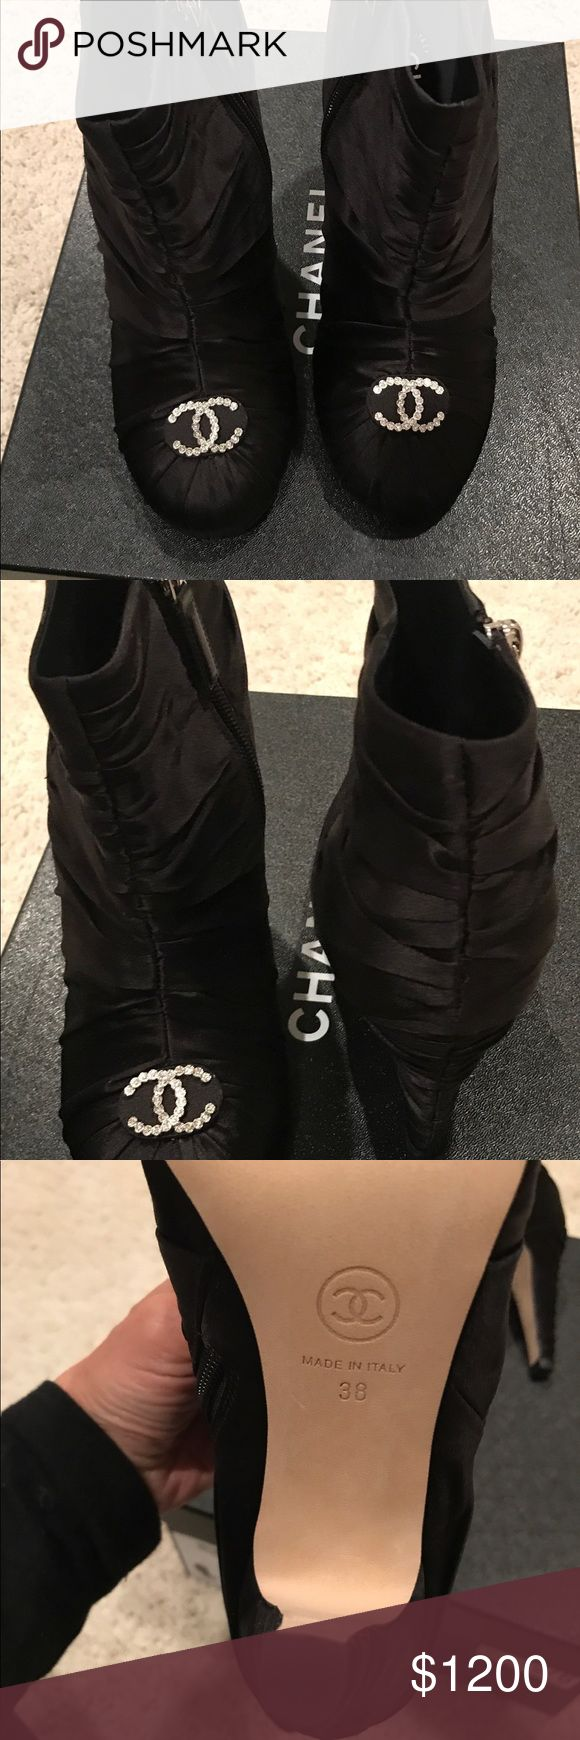 Beautiful Chanel Satin Booties  Brand New Chanel Short satin boots   Size 38   Comes with: Box and boots  Receipt available, purchased from Neiman Marcus  ❌Final Sale❌ CHANEL Shoes Ankle Boots & Booties